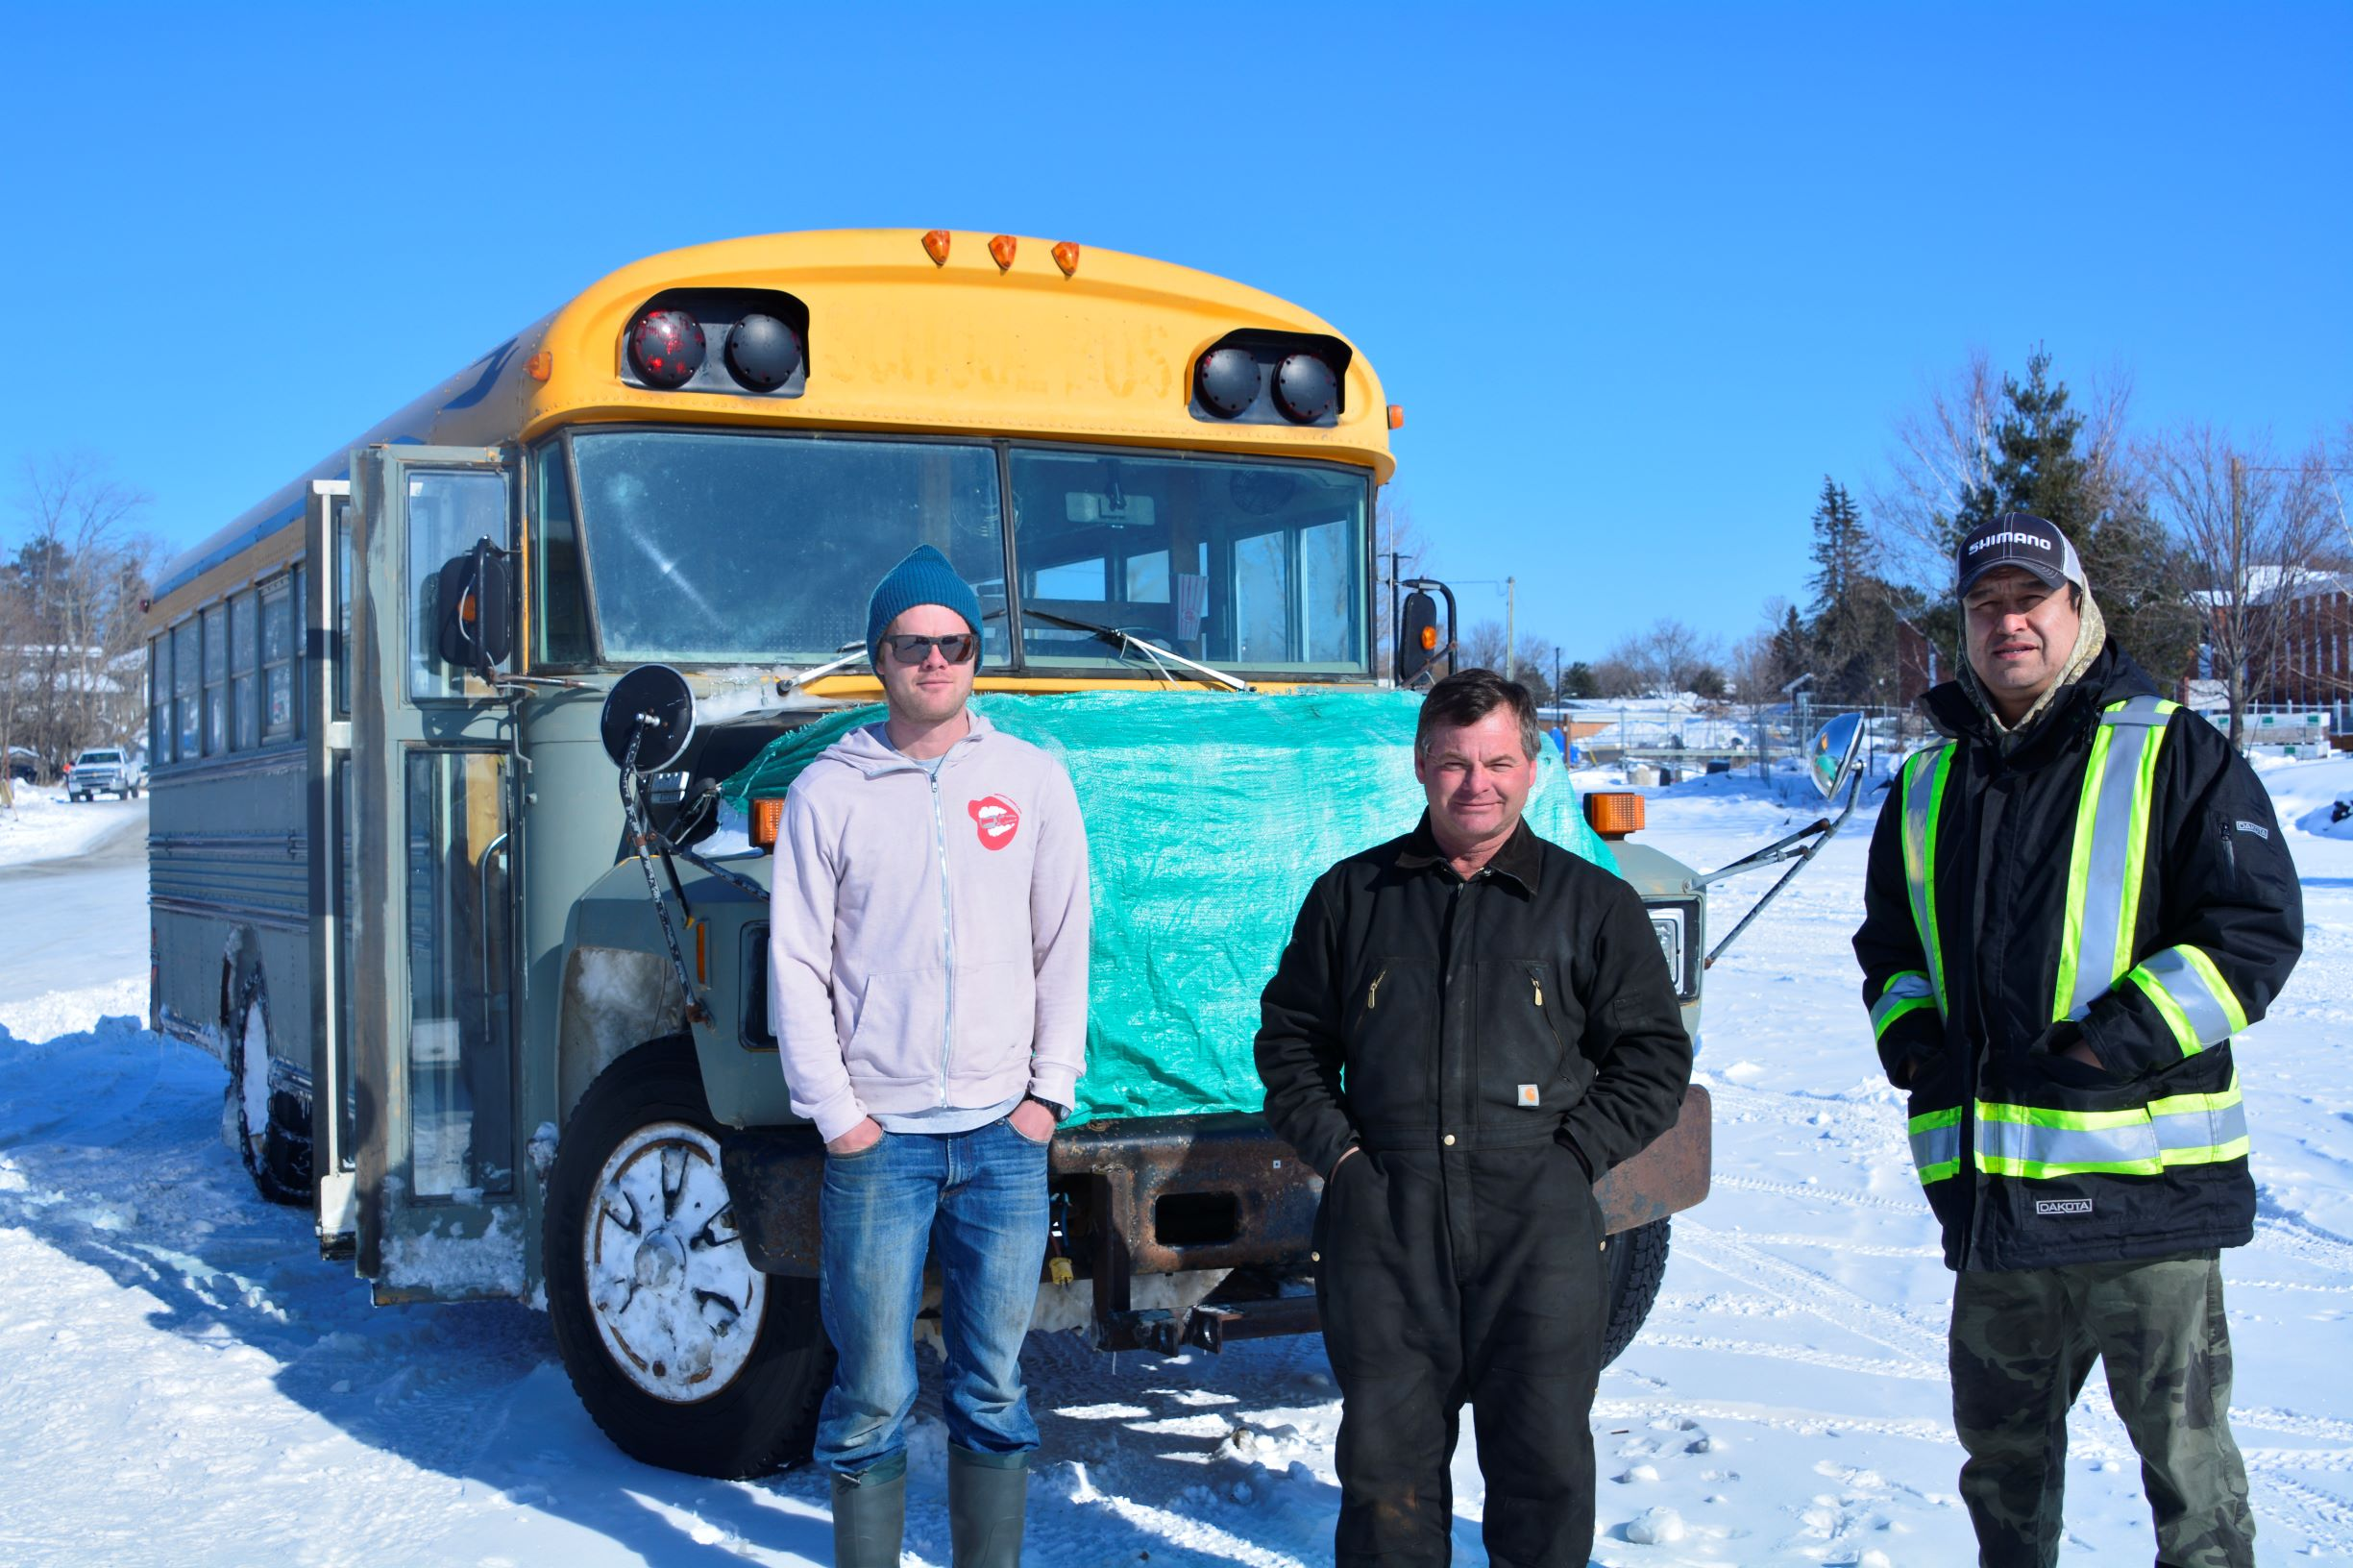 Food deliveries assist First Nation communities during Covid-19 Pandemic